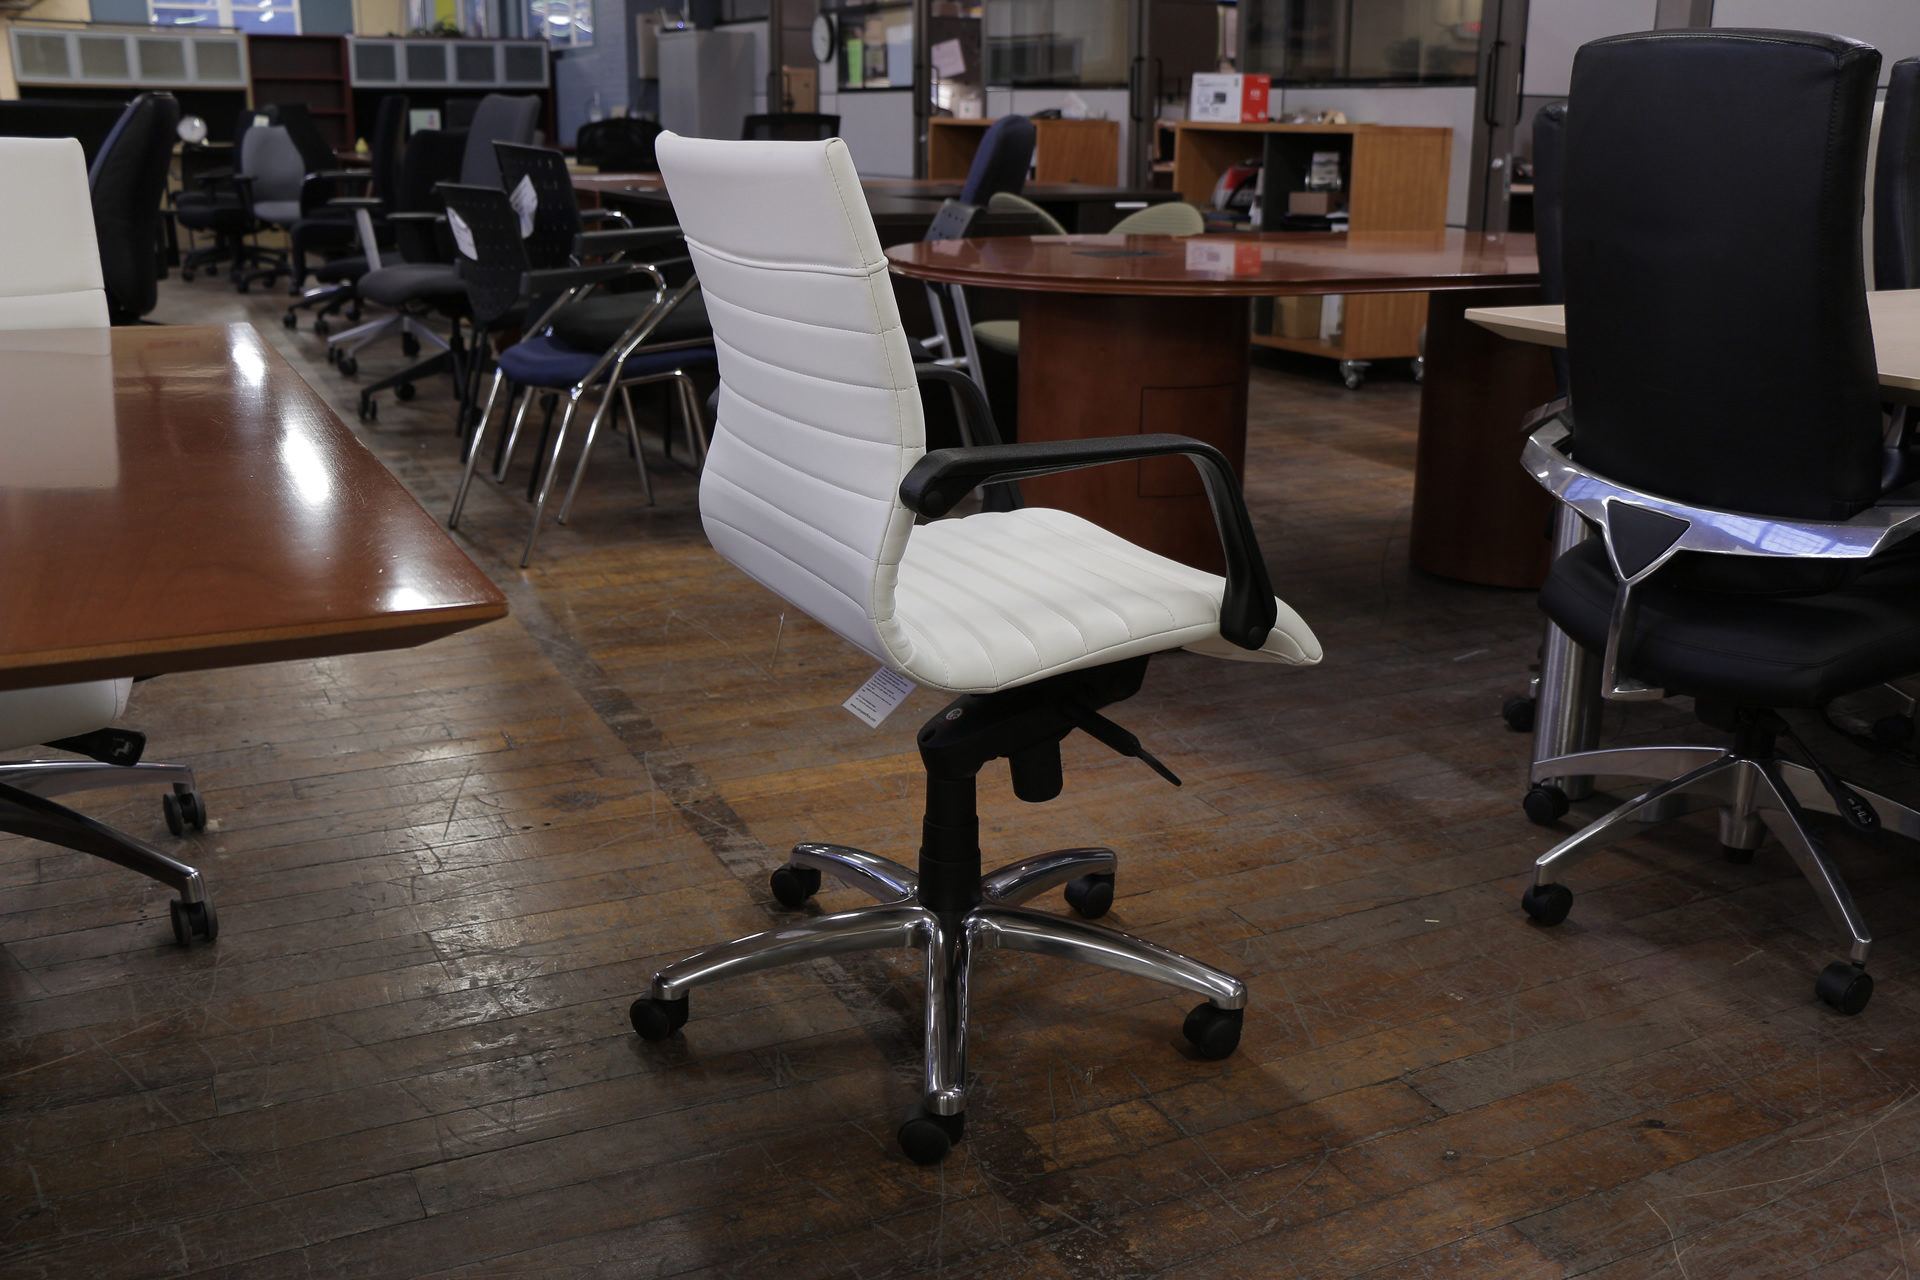 peartreeofficefurniture_peartreeofficefurniture_peartreeofficefurniture_img_9578.jpg